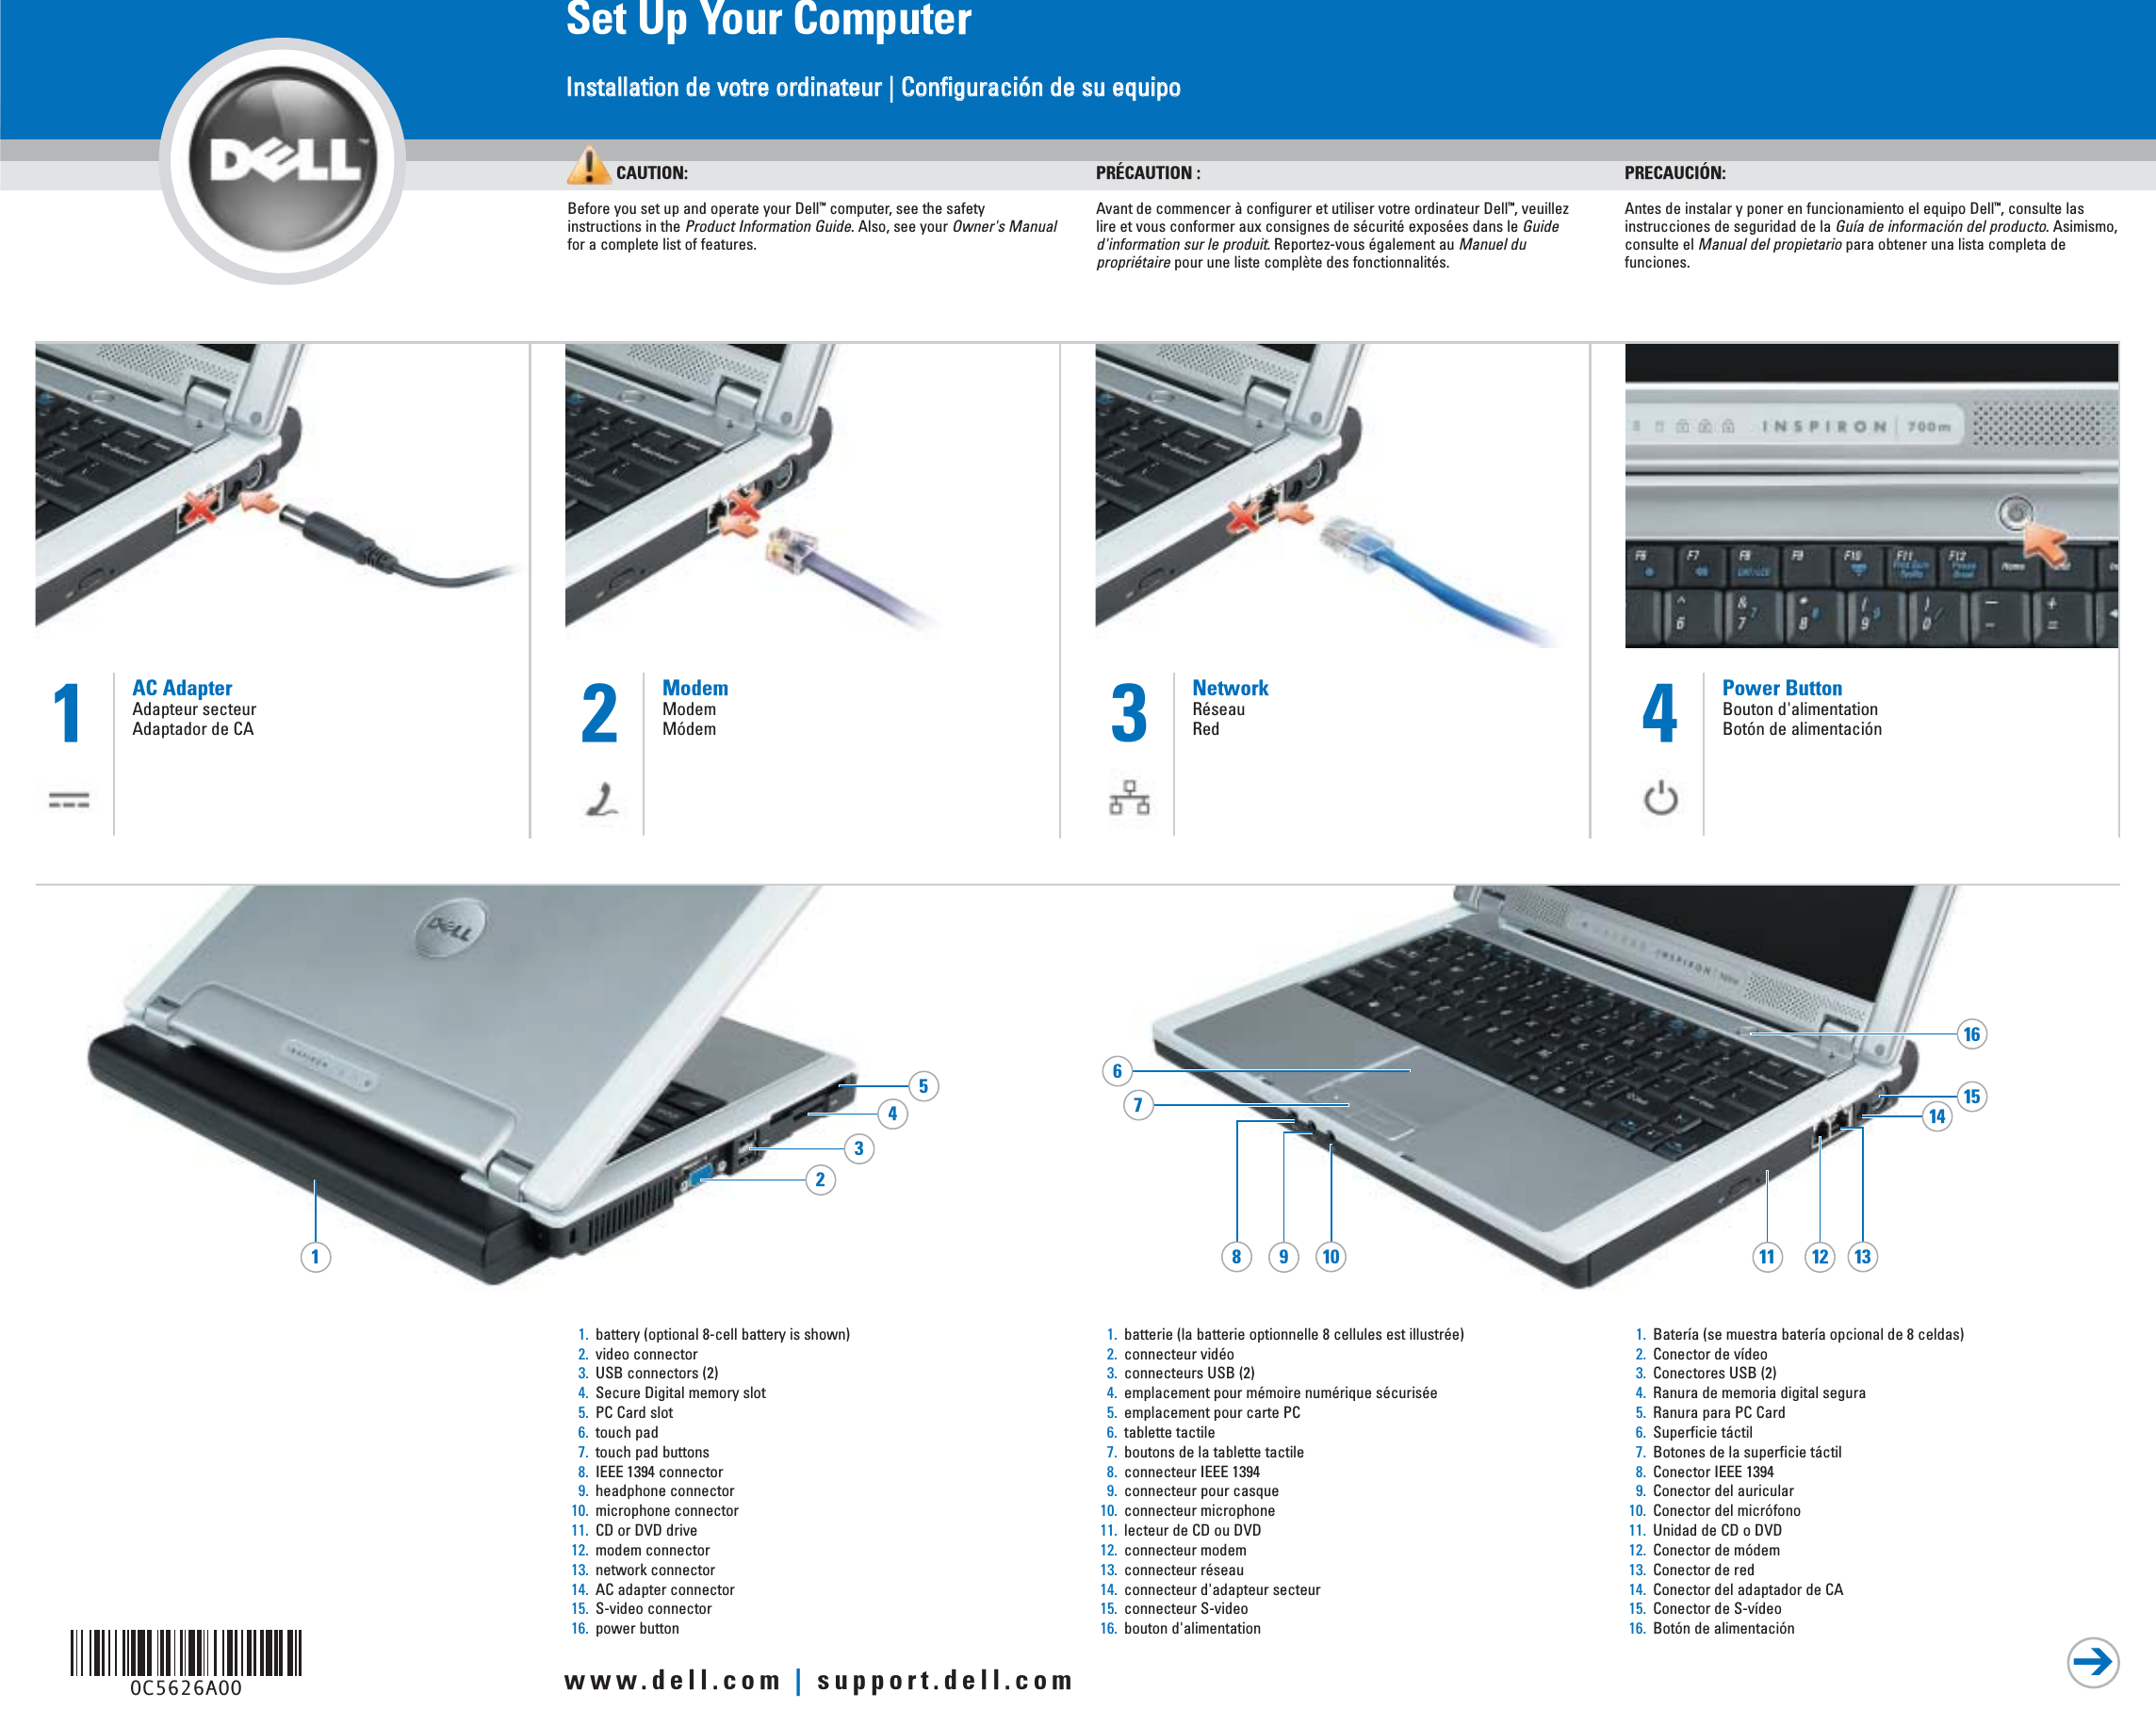 DELL INSPIRON 700M ETHERNET DRIVER PC